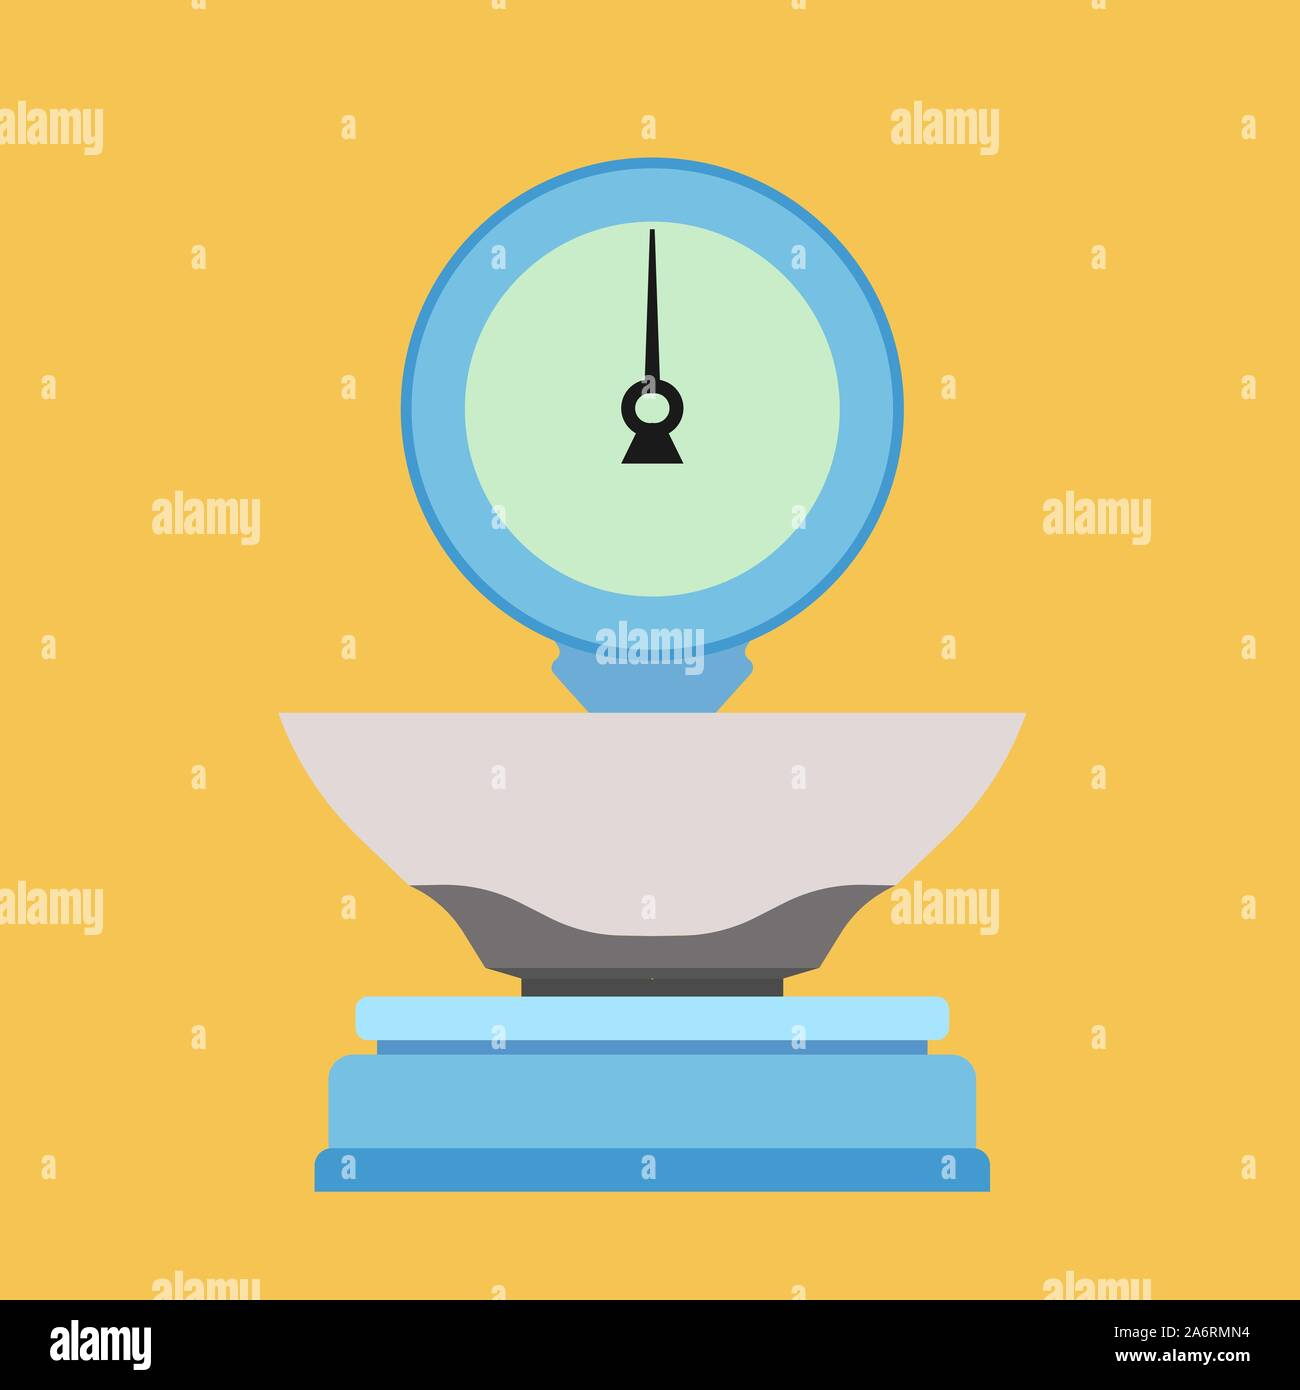 Libra sign vector icon illustration. Scale isolated balance equal. Weight measurement analysis appliance mass. Stock Vector